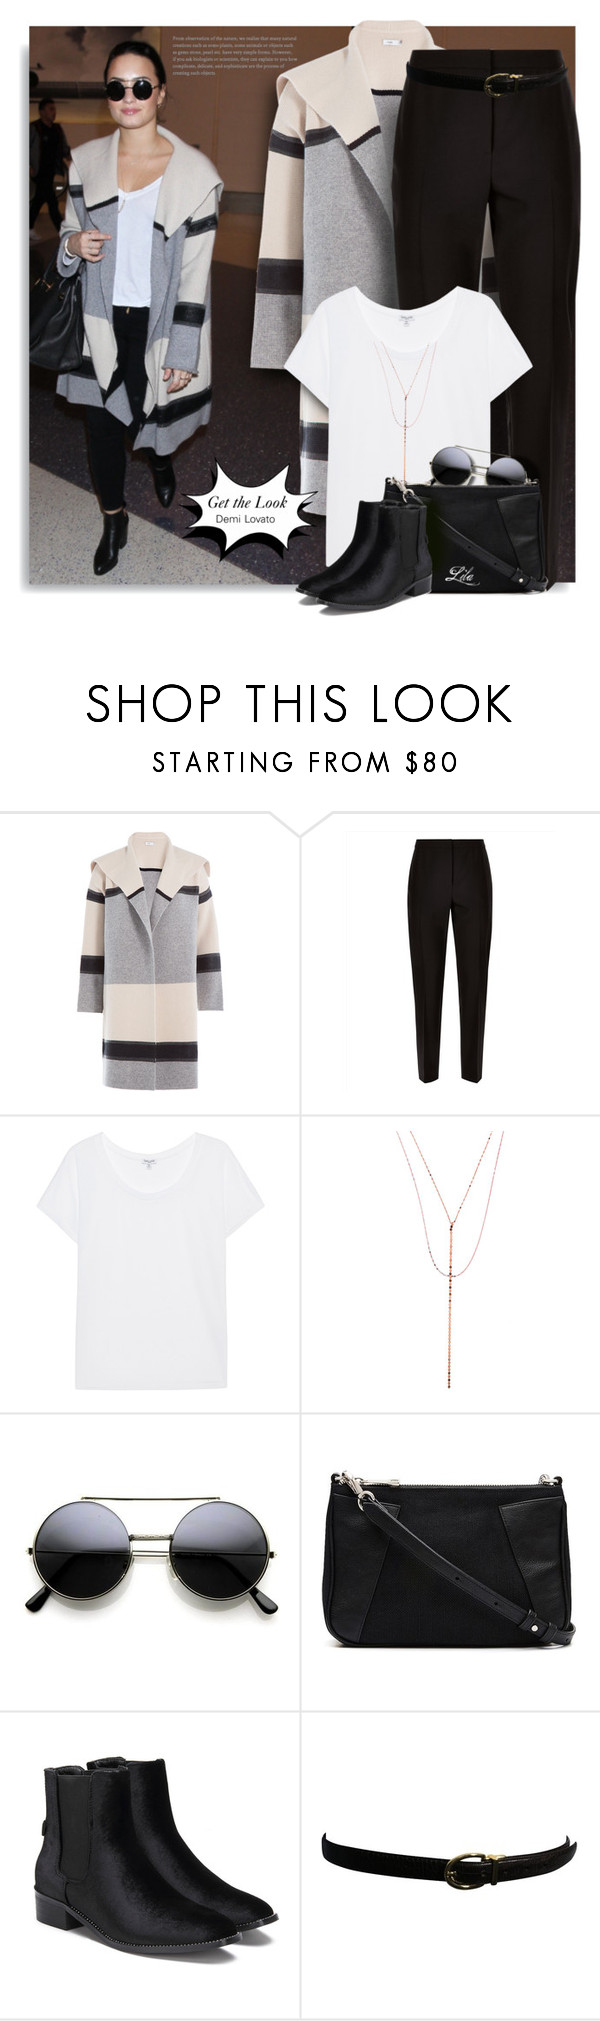 """Get the Look: Demi Lovato"" by breathing-style ❤ liked on Polyvore featuring Vince, Jaeger, Splendid, Lana, Witchery and Ralph Lauren"